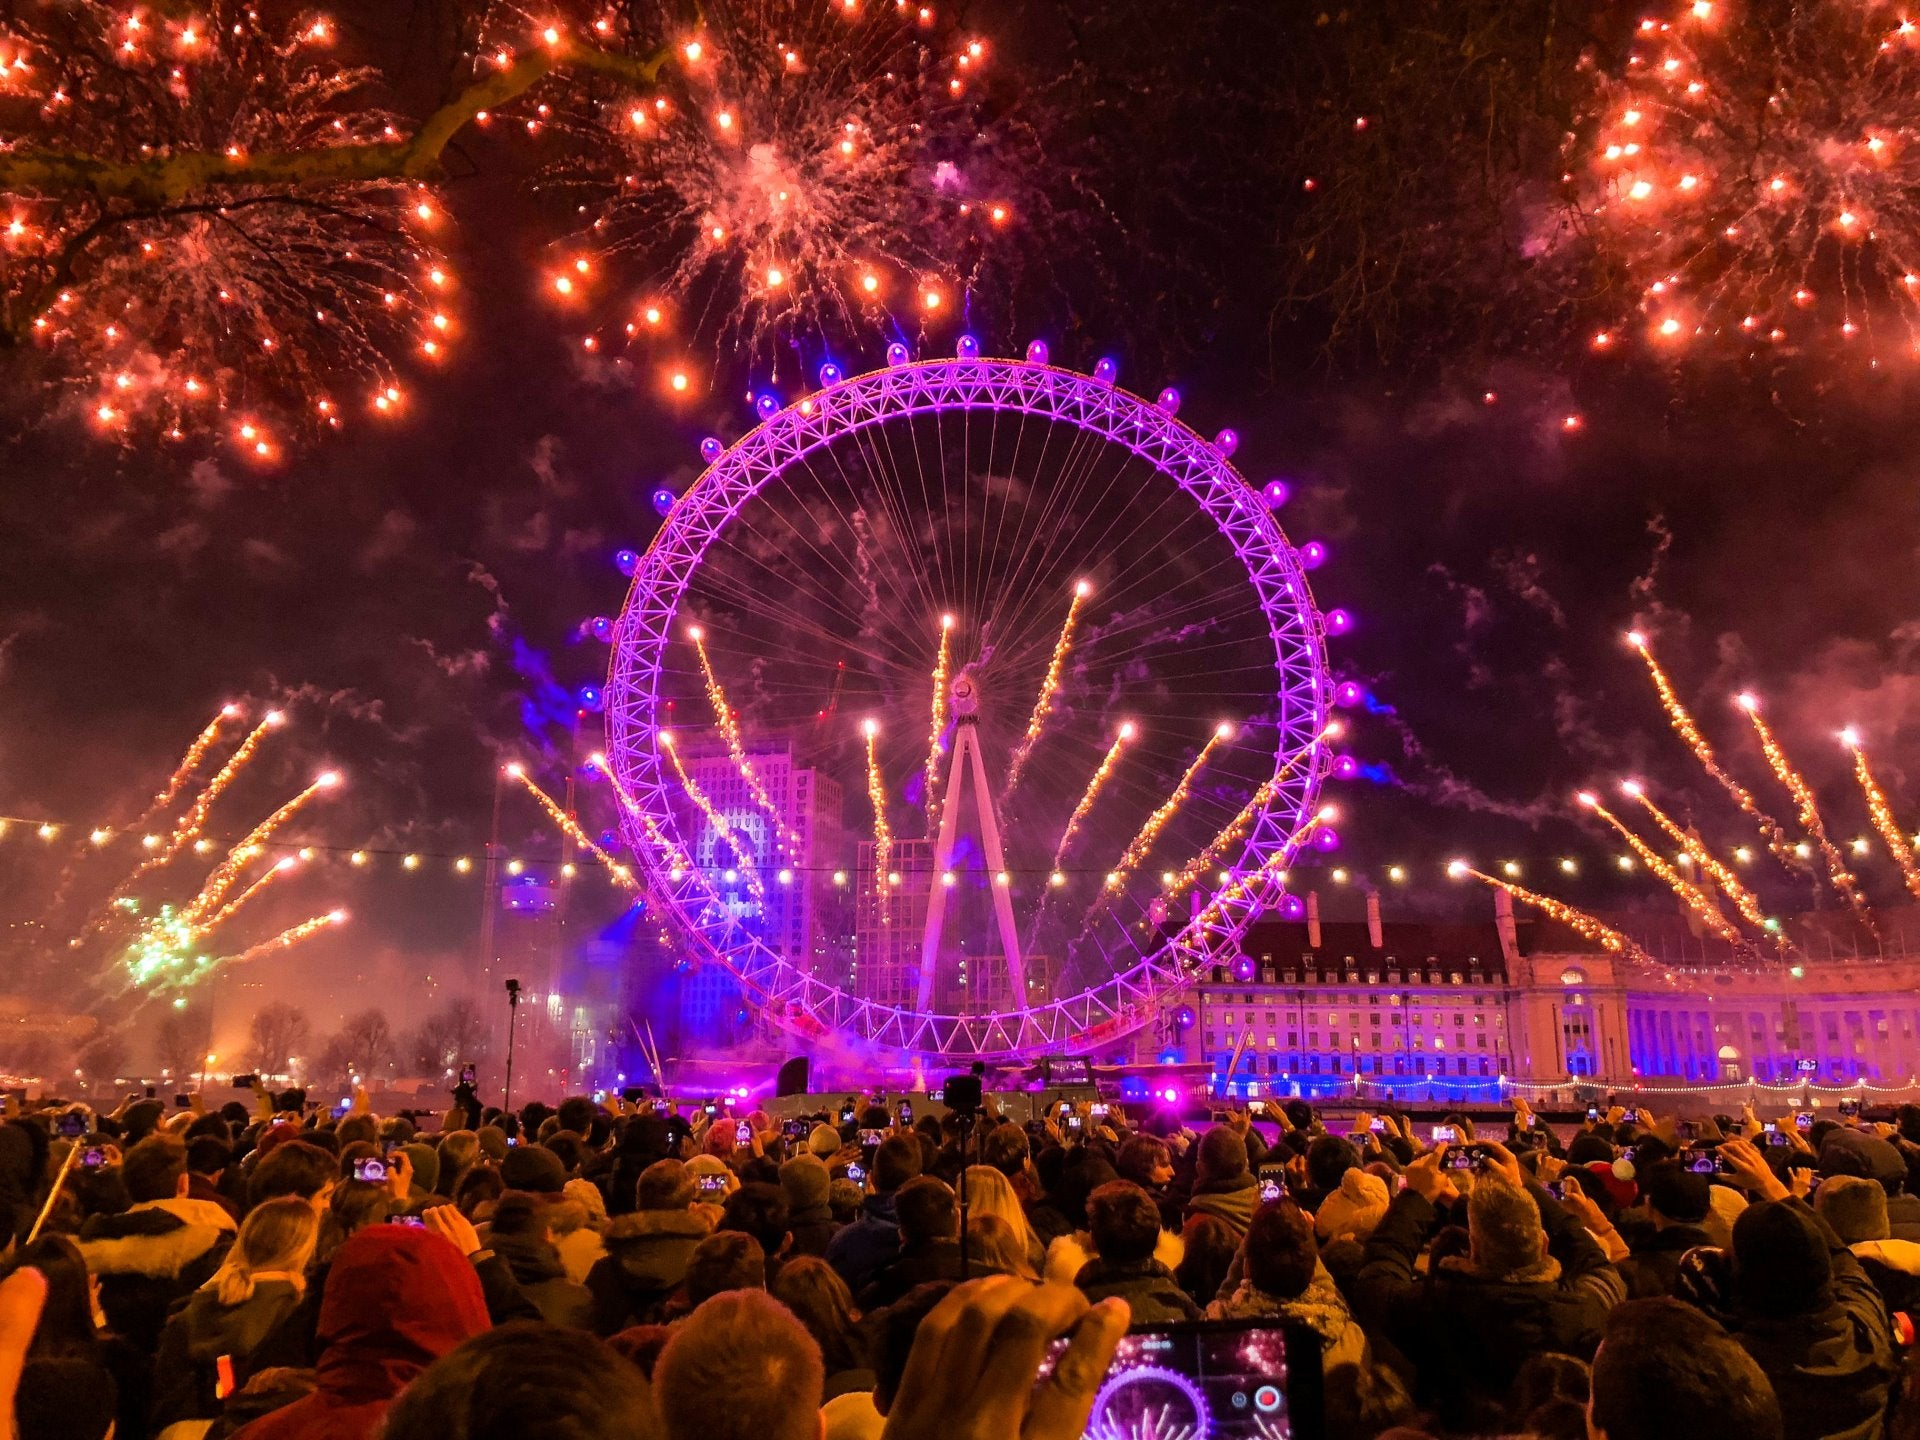 The Best Locations in London to Watch the Fireworks